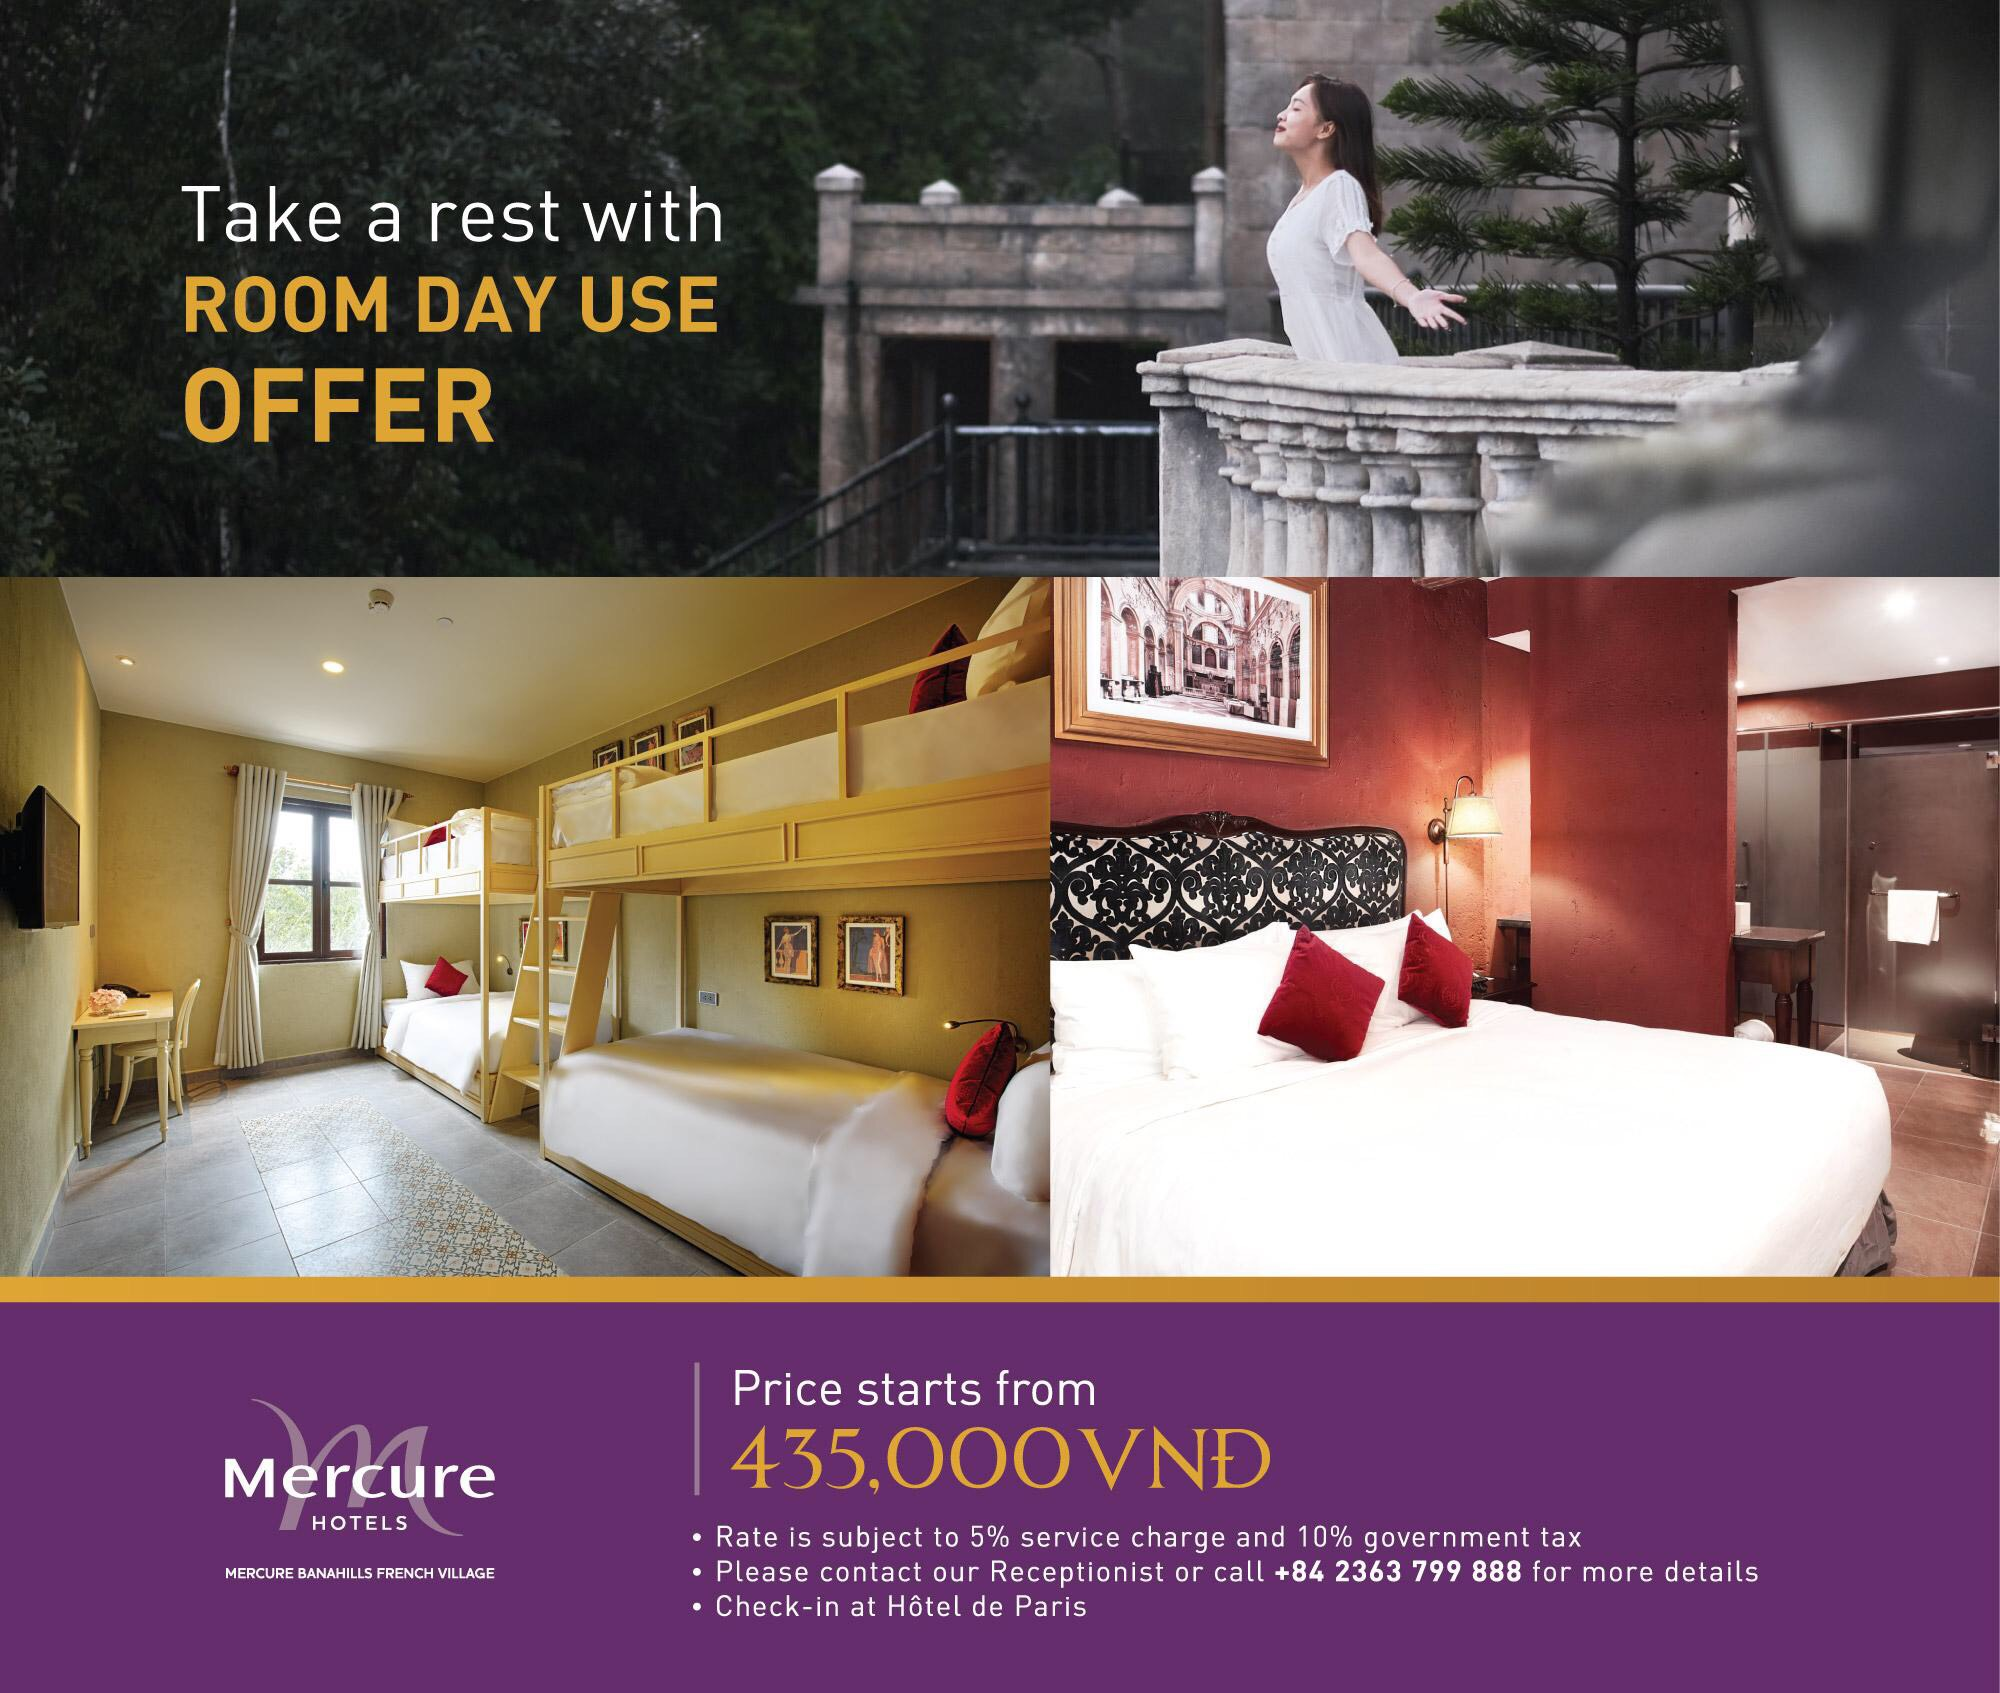 Room Day Use Offer